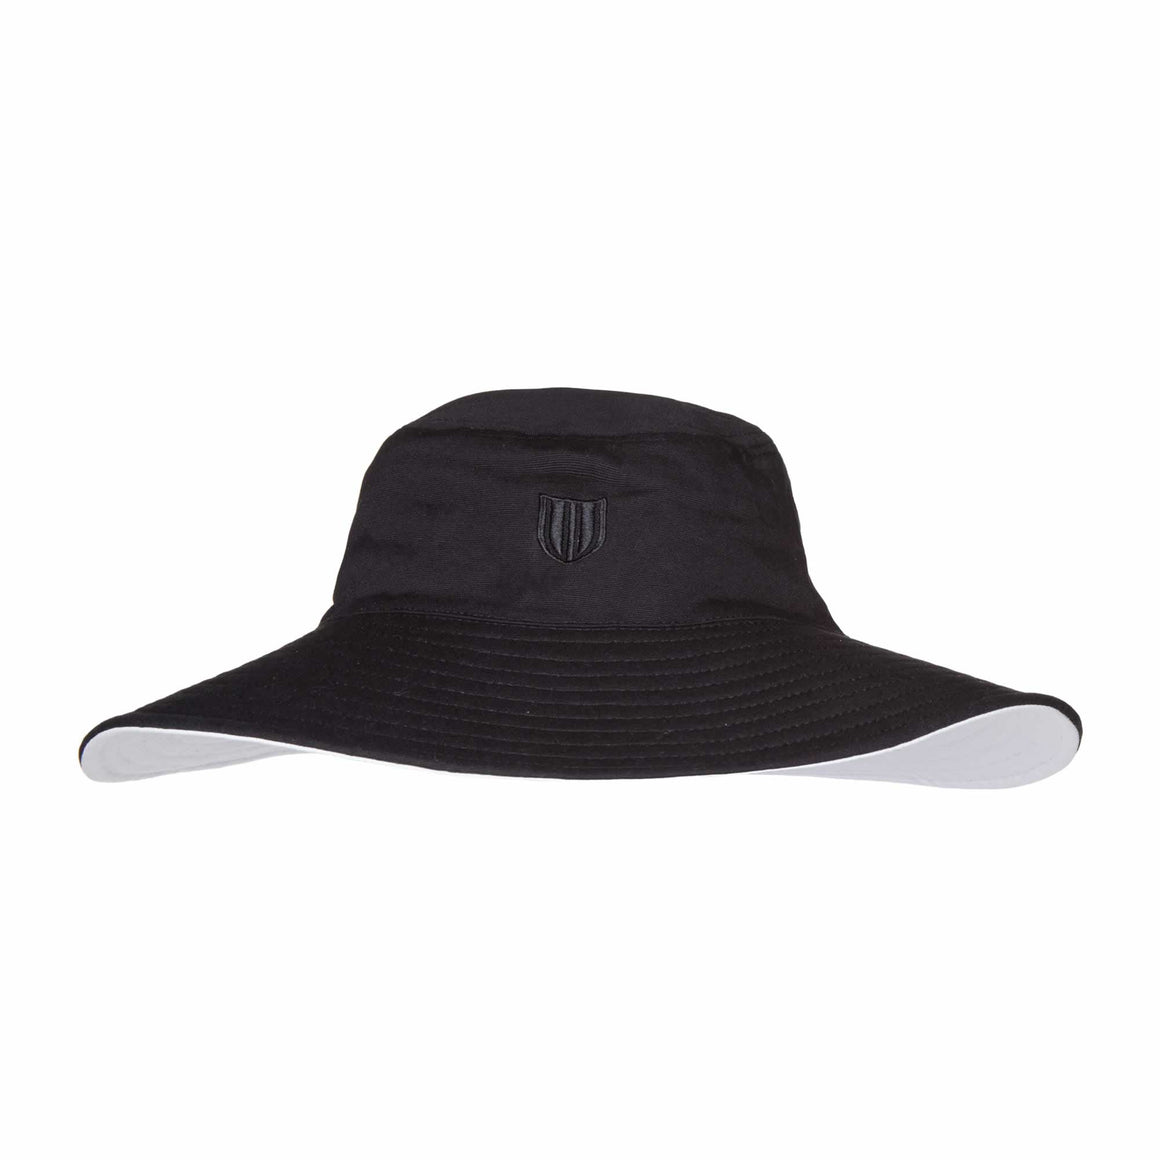 753b3cd6219f1 Womens Wide Brim Reversible Sun Hat